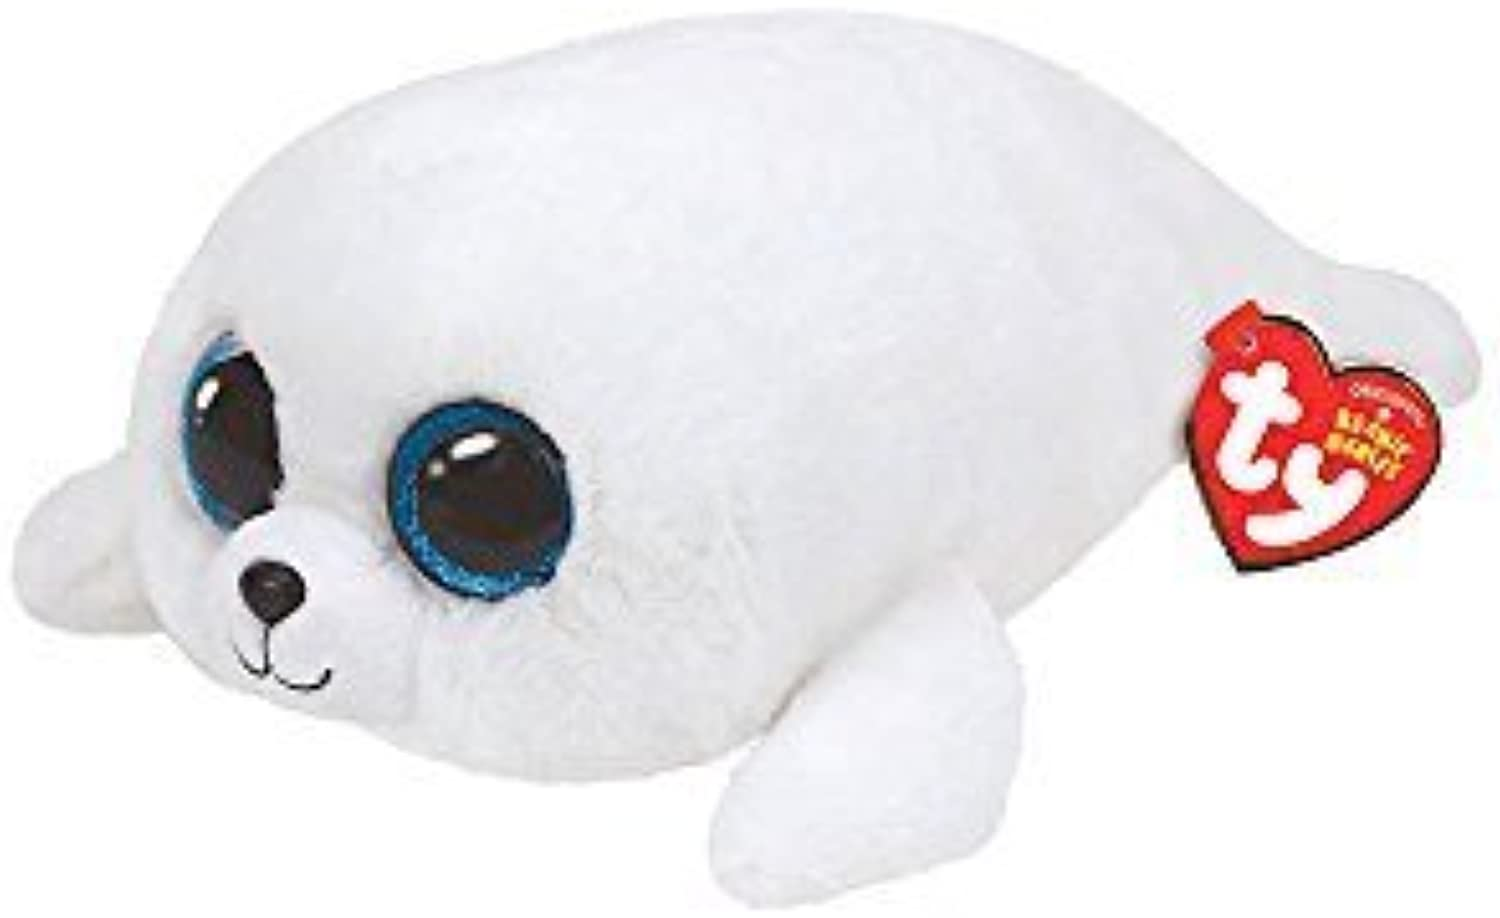 Claire's Accessories Ty Beanie Boos Plush Icy the Seal - 6 Small by Claire's